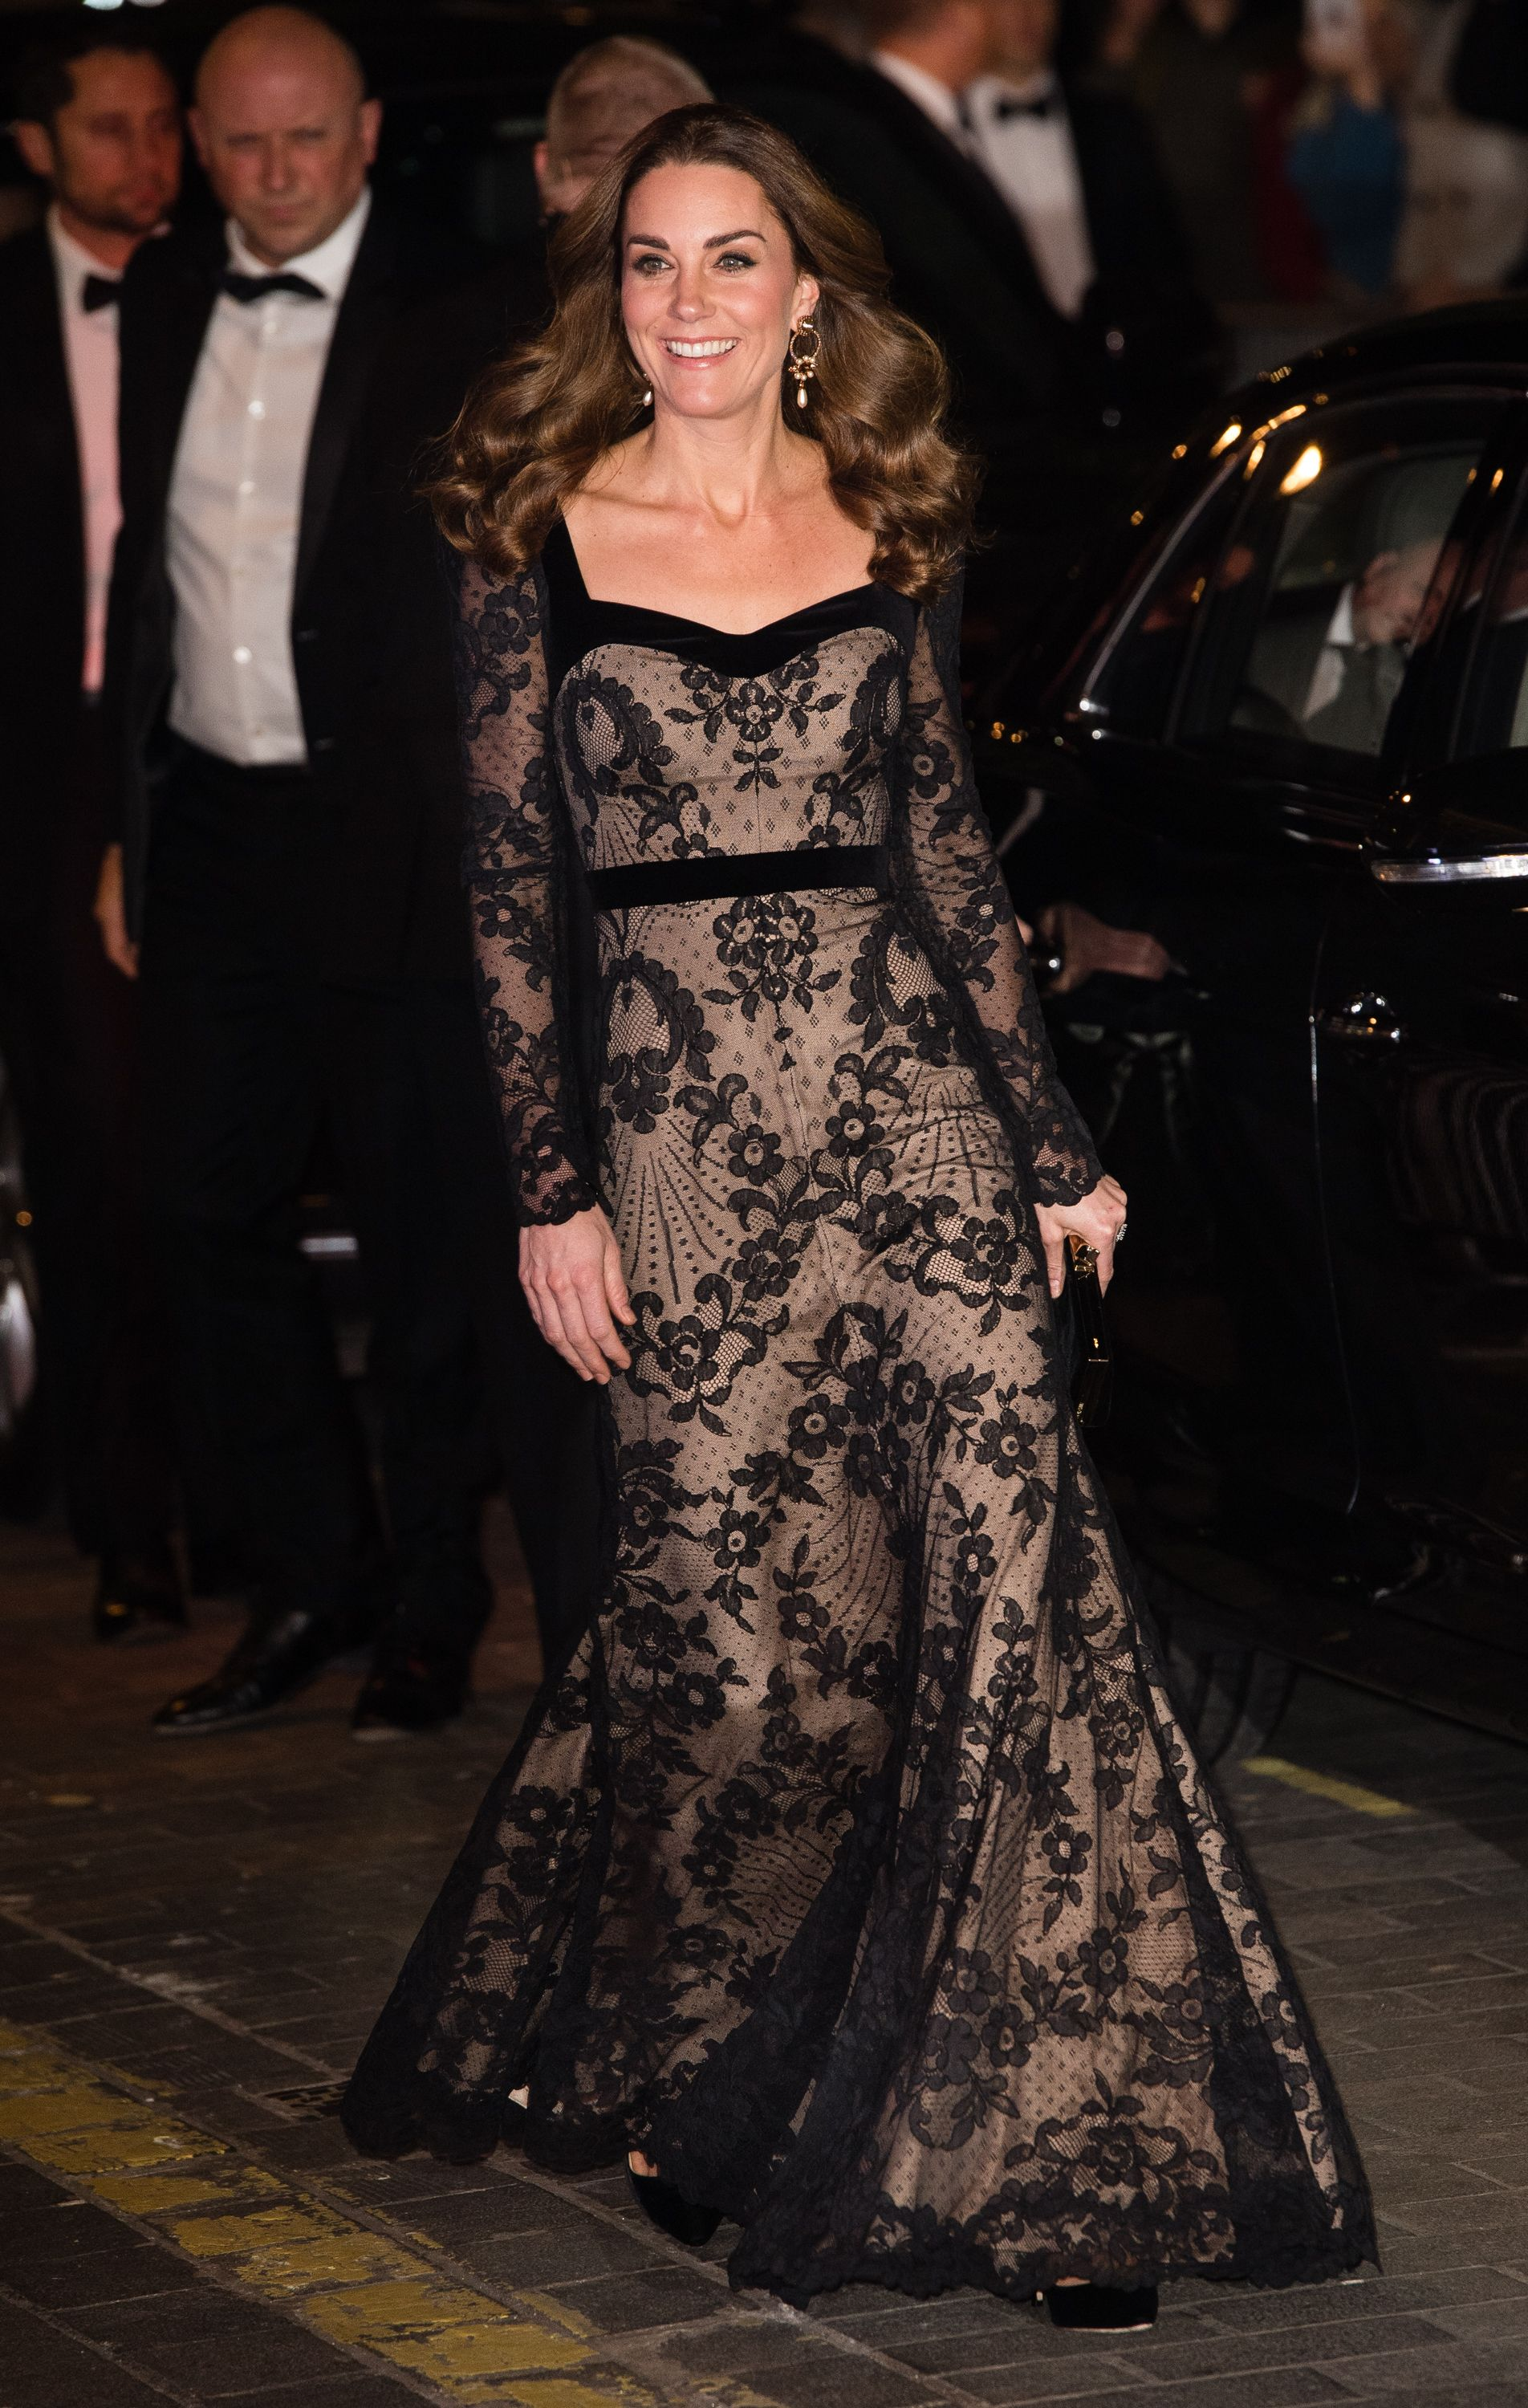 Kate Middleton Stuns in a Sheer Lace Alexander McQueen Gown at the Royal Variety Performance